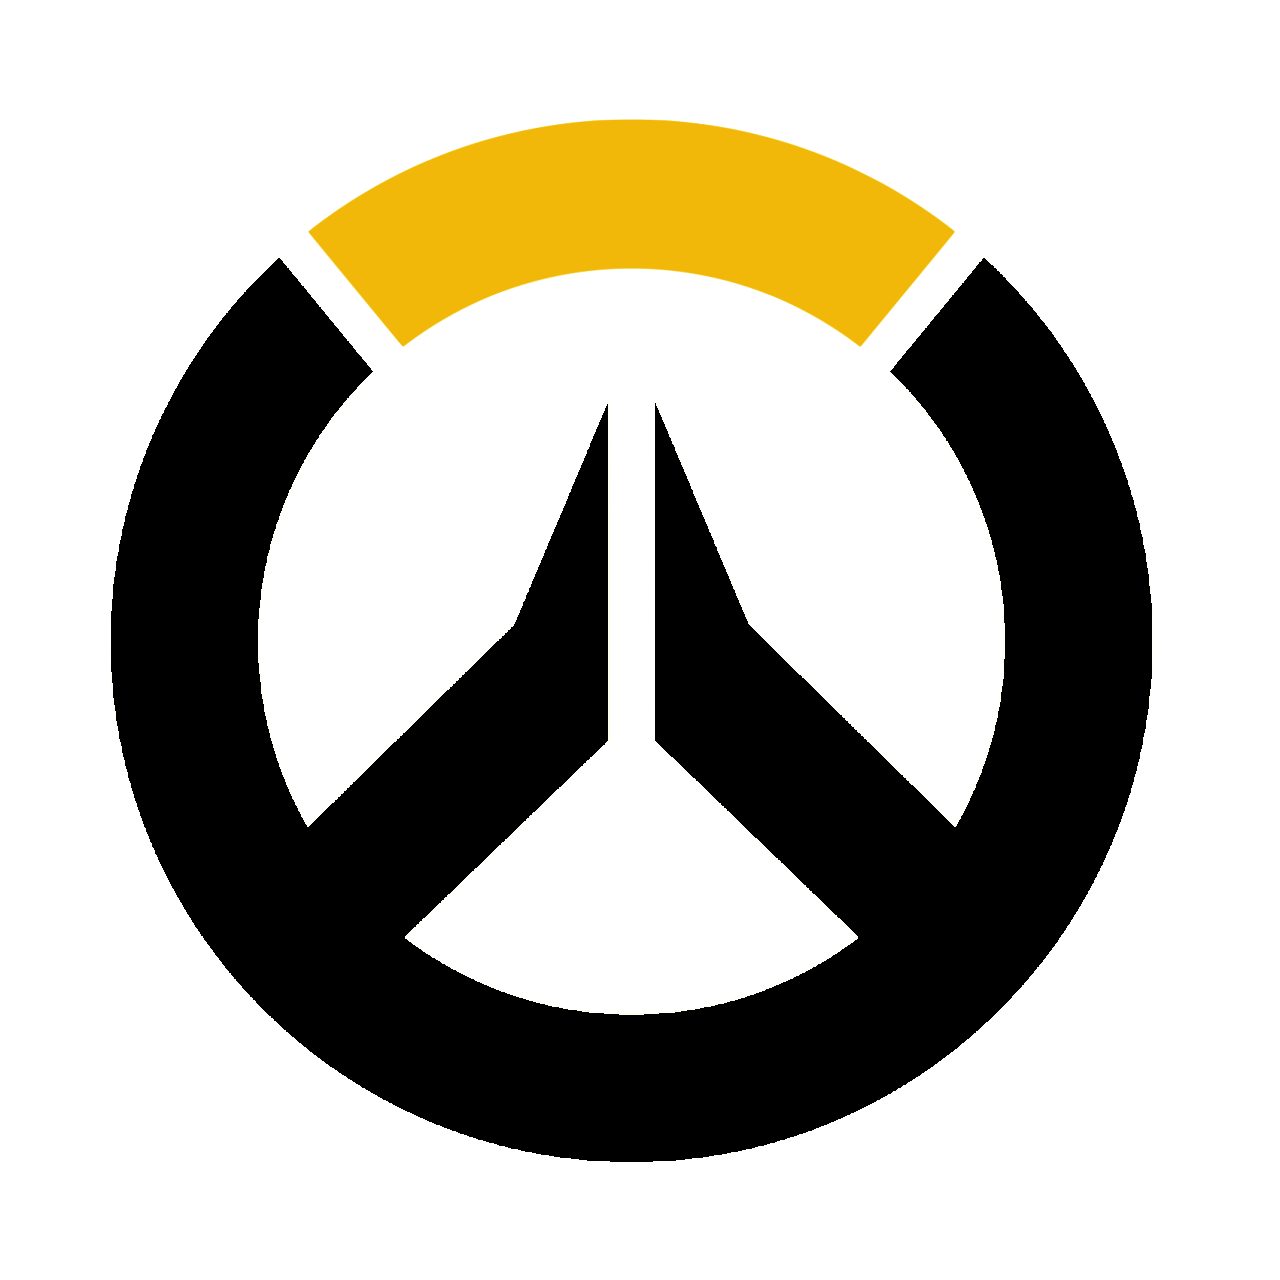 Overwatch icon clipart image black and white Overwatch Icon Png #271884 - Free Icons Library image black and white